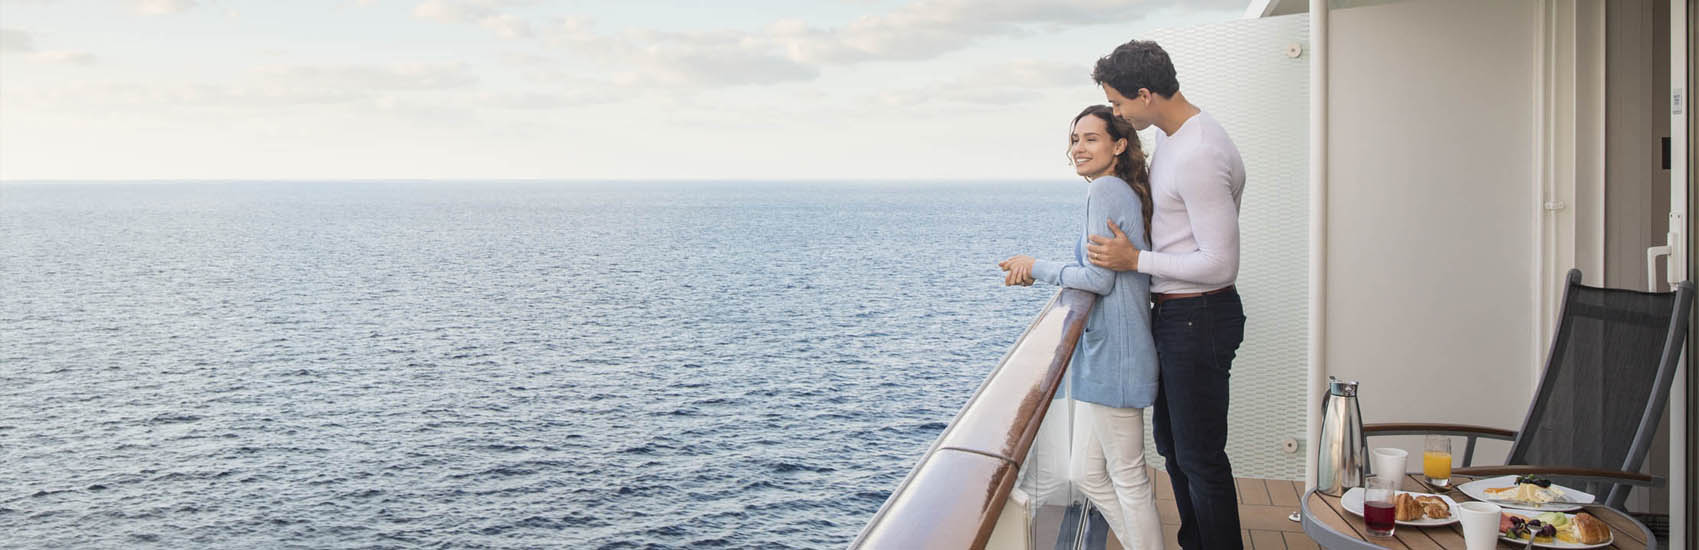 Sail Your Way With Celebrity Cruises 2